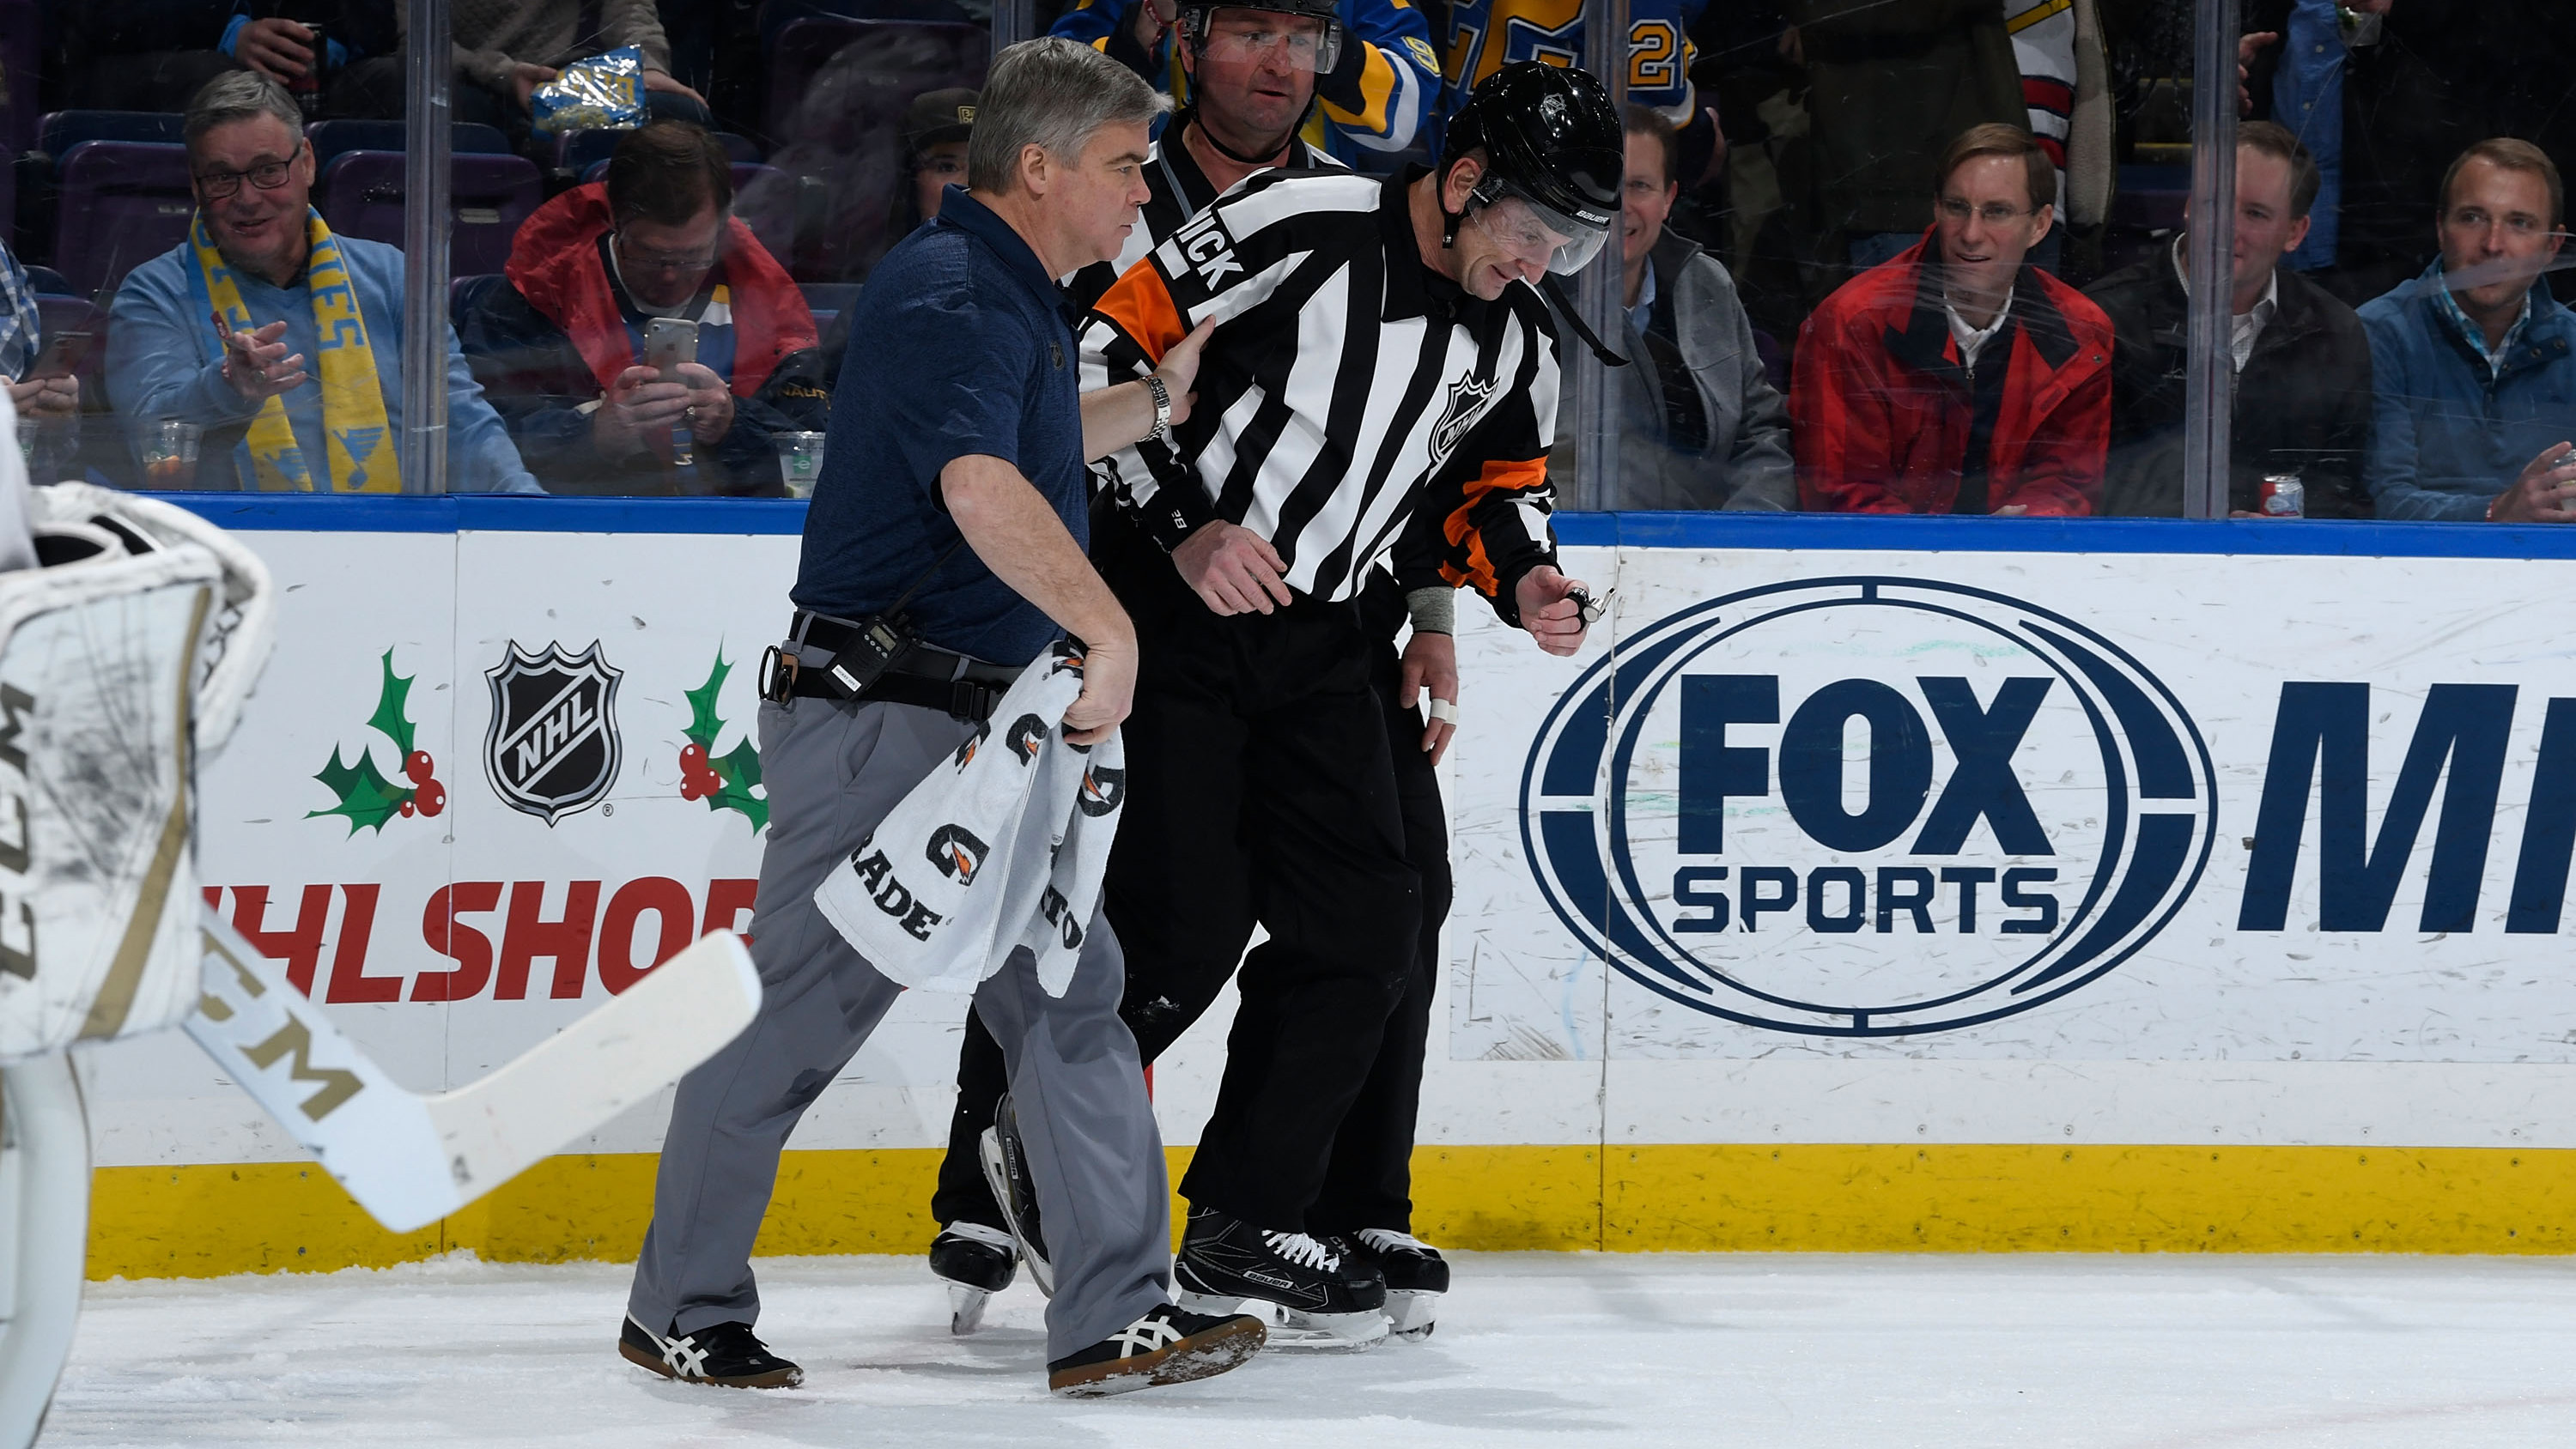 Tim Peel  Robert Bortuzzo goal hits ref in crotch (video)  368c4d28c6f1